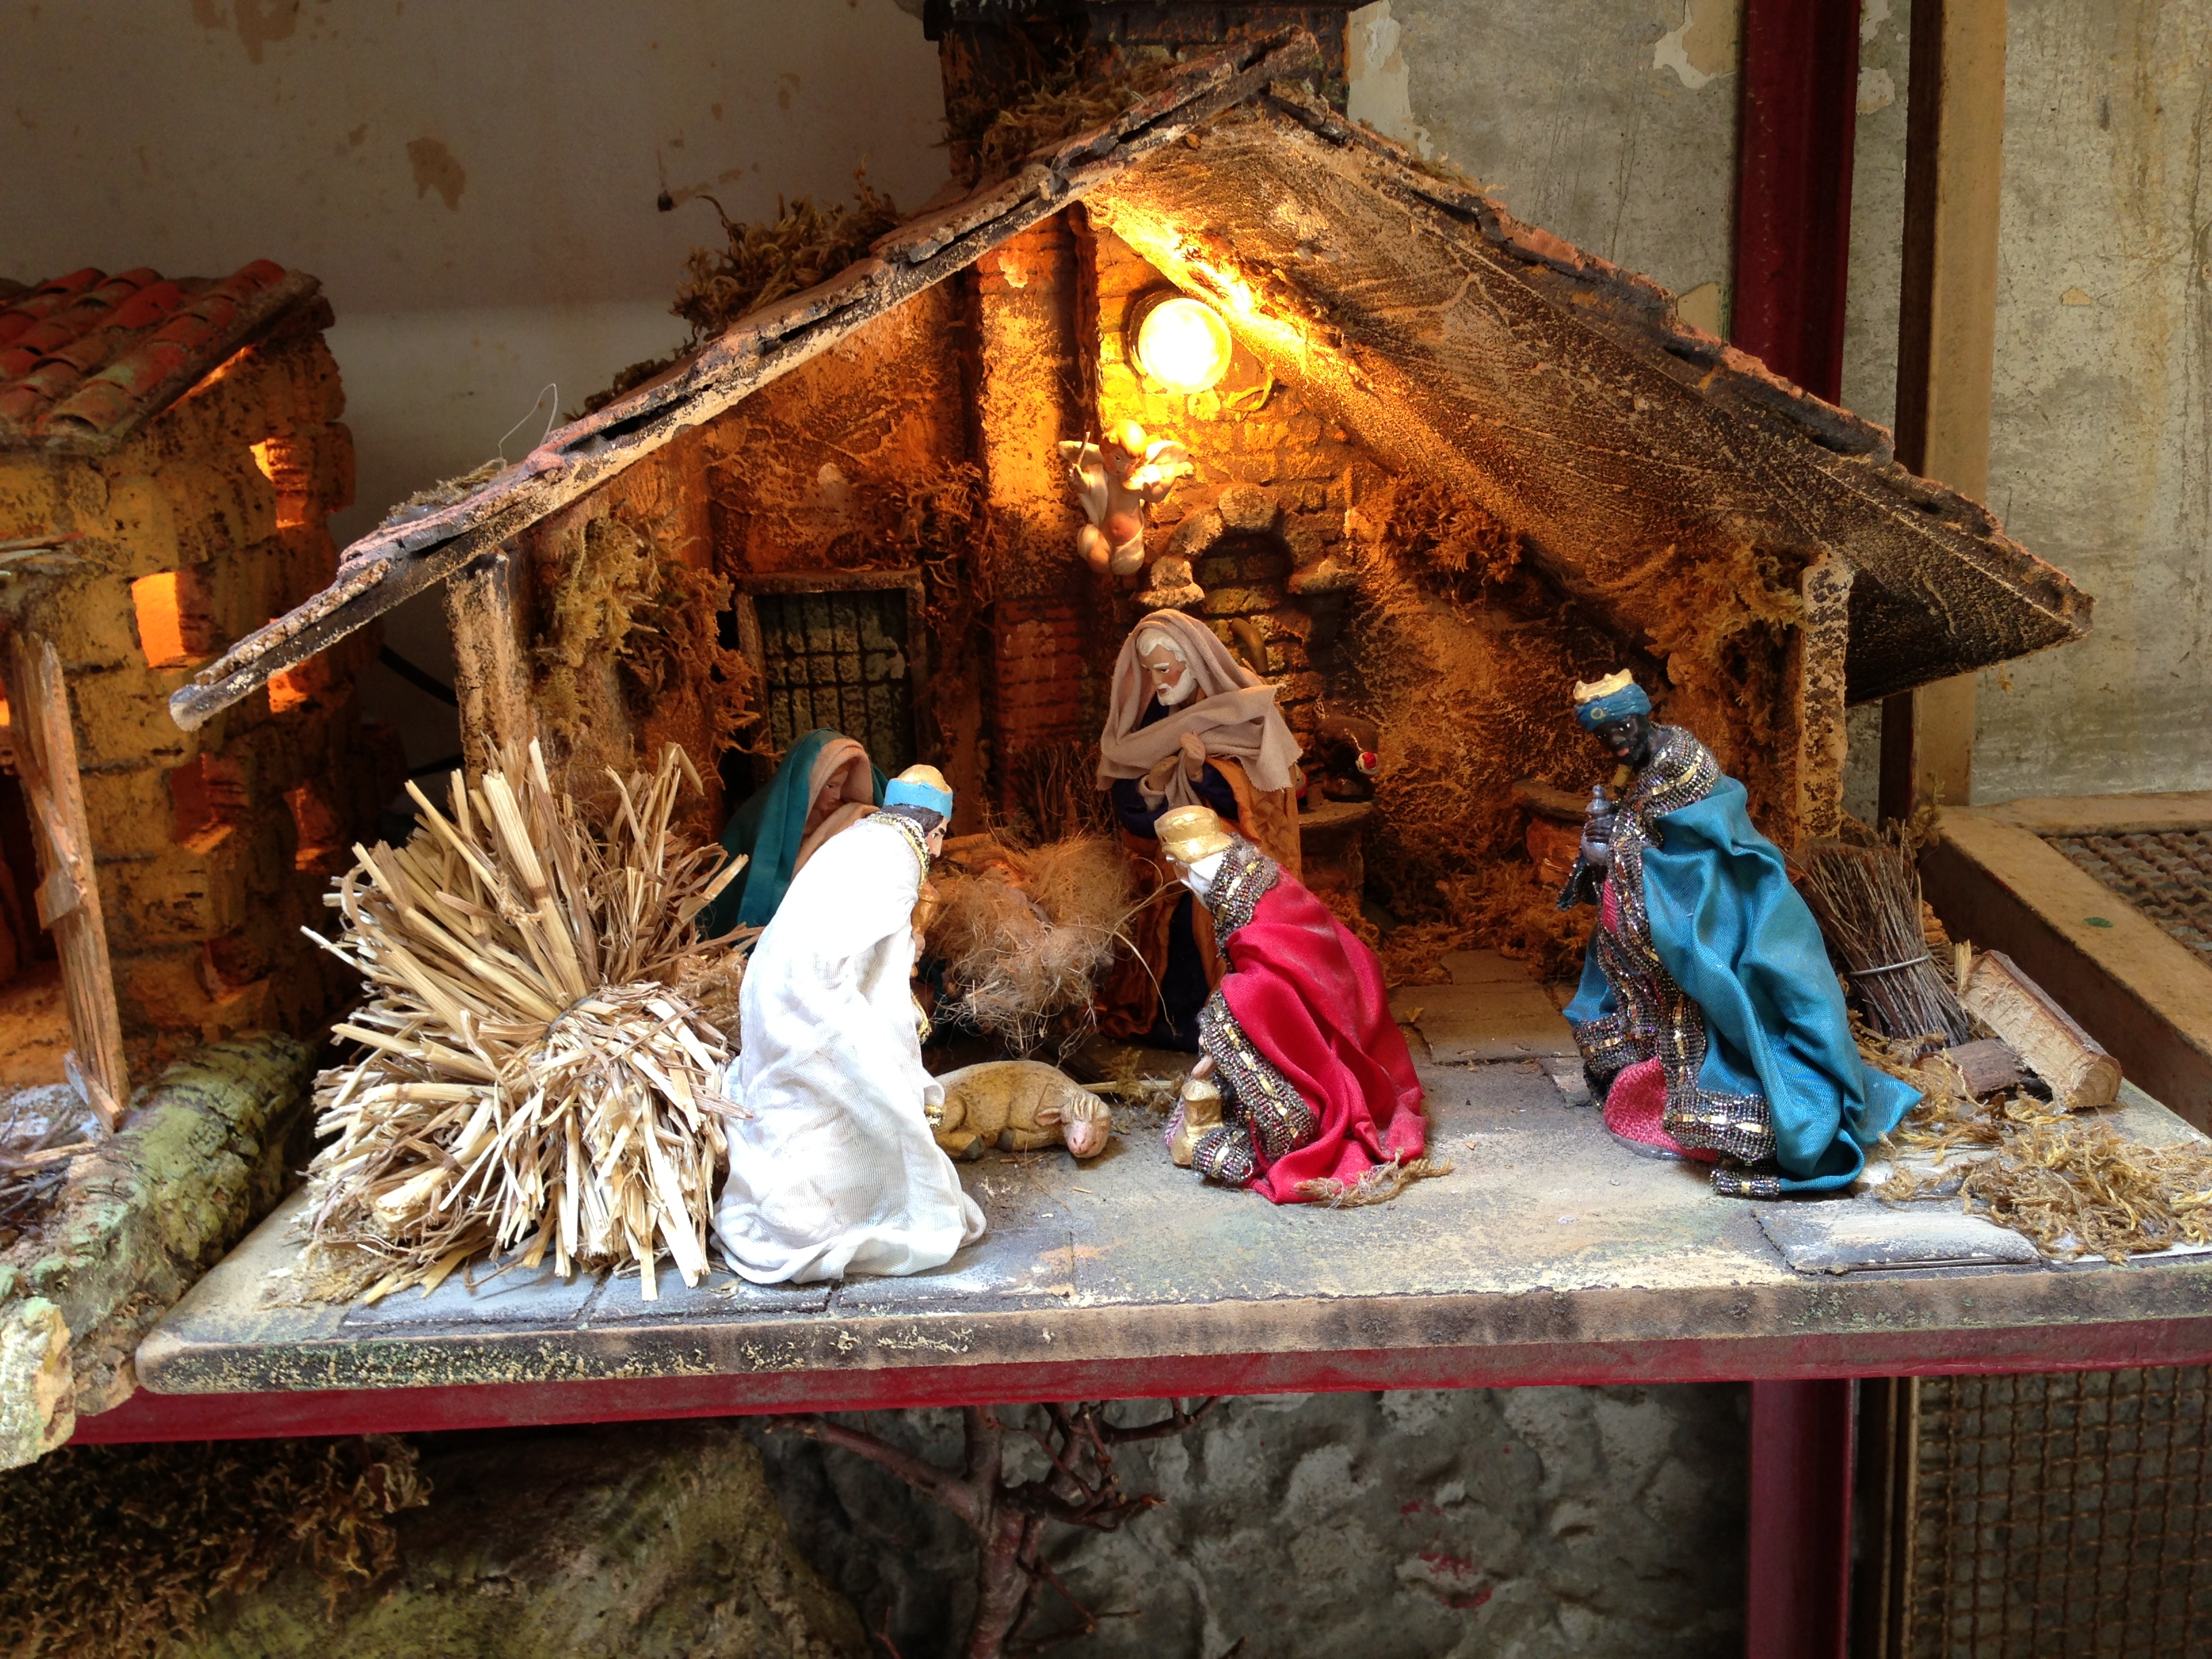 The Presepe – a Christmas tradition in Naples